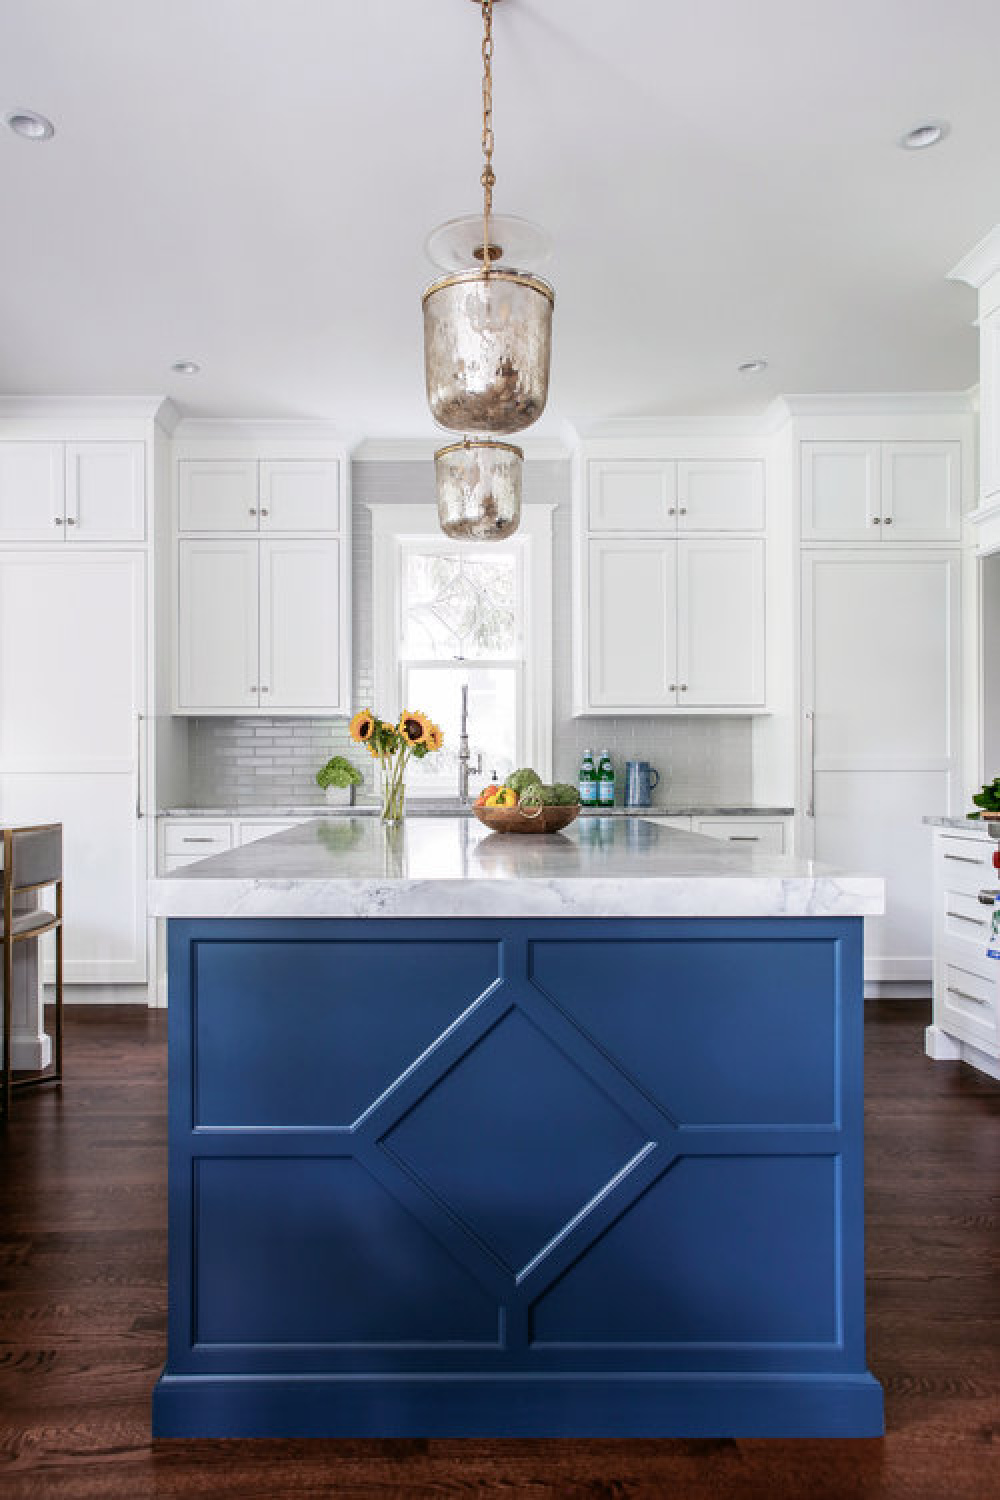 Classic blue painted island in a traditional style white kitchen by Edward Deegan Architects.